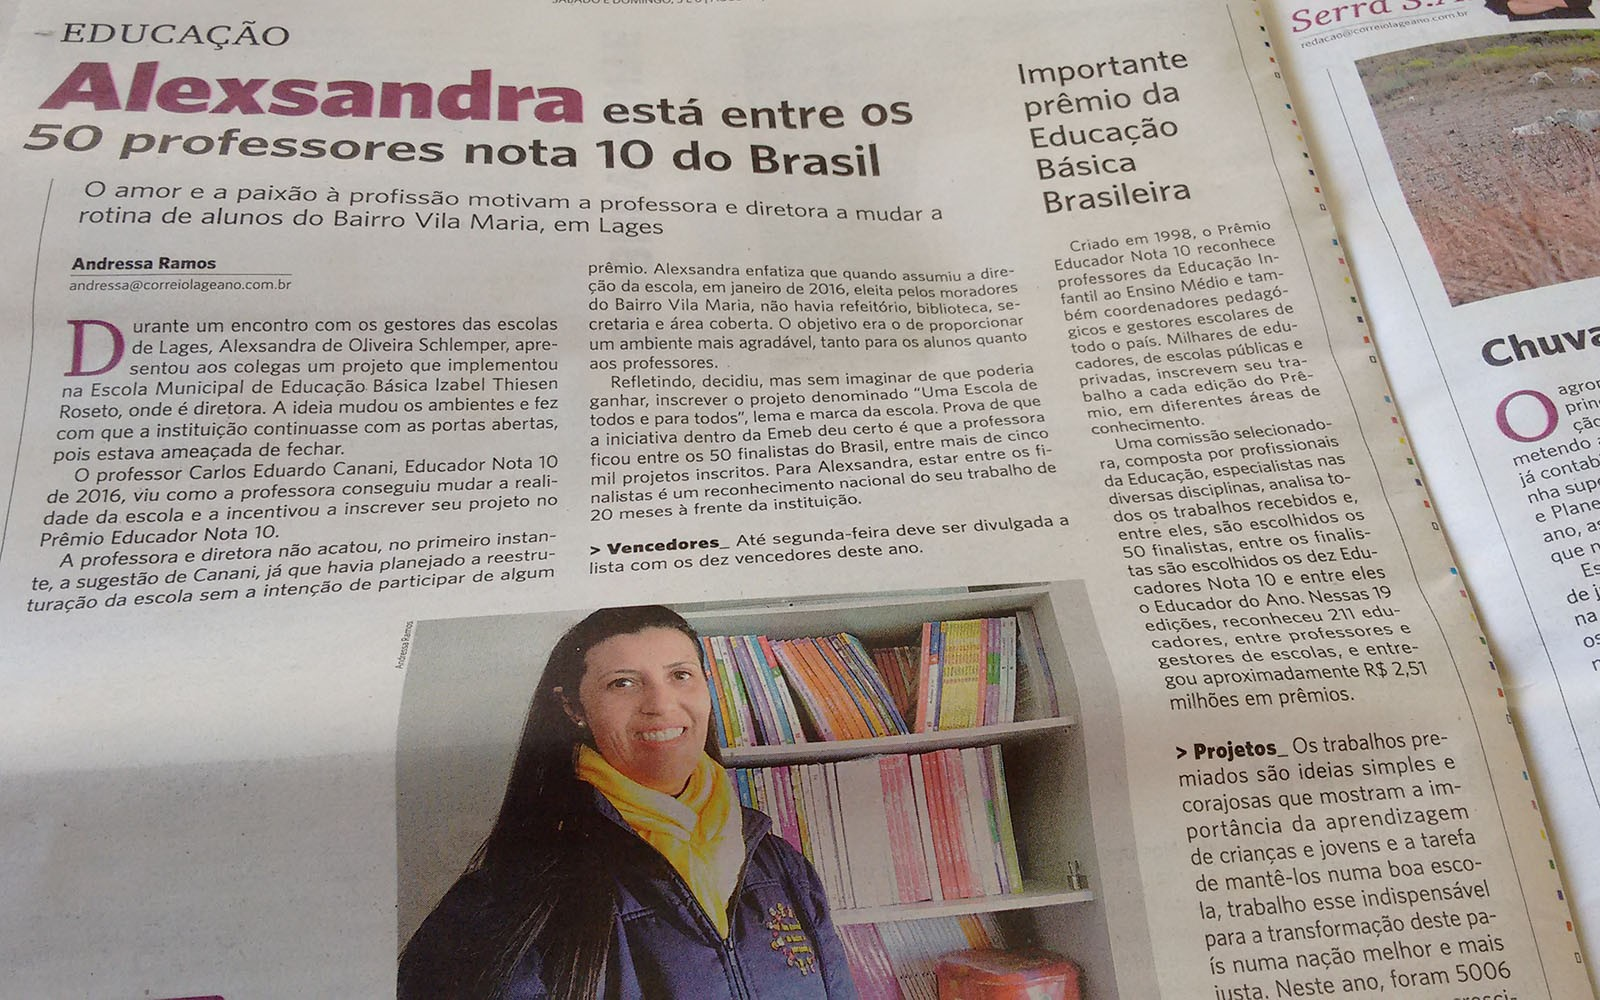 Educadora de Lages entre os 50 professores Nota 10 do Brasil